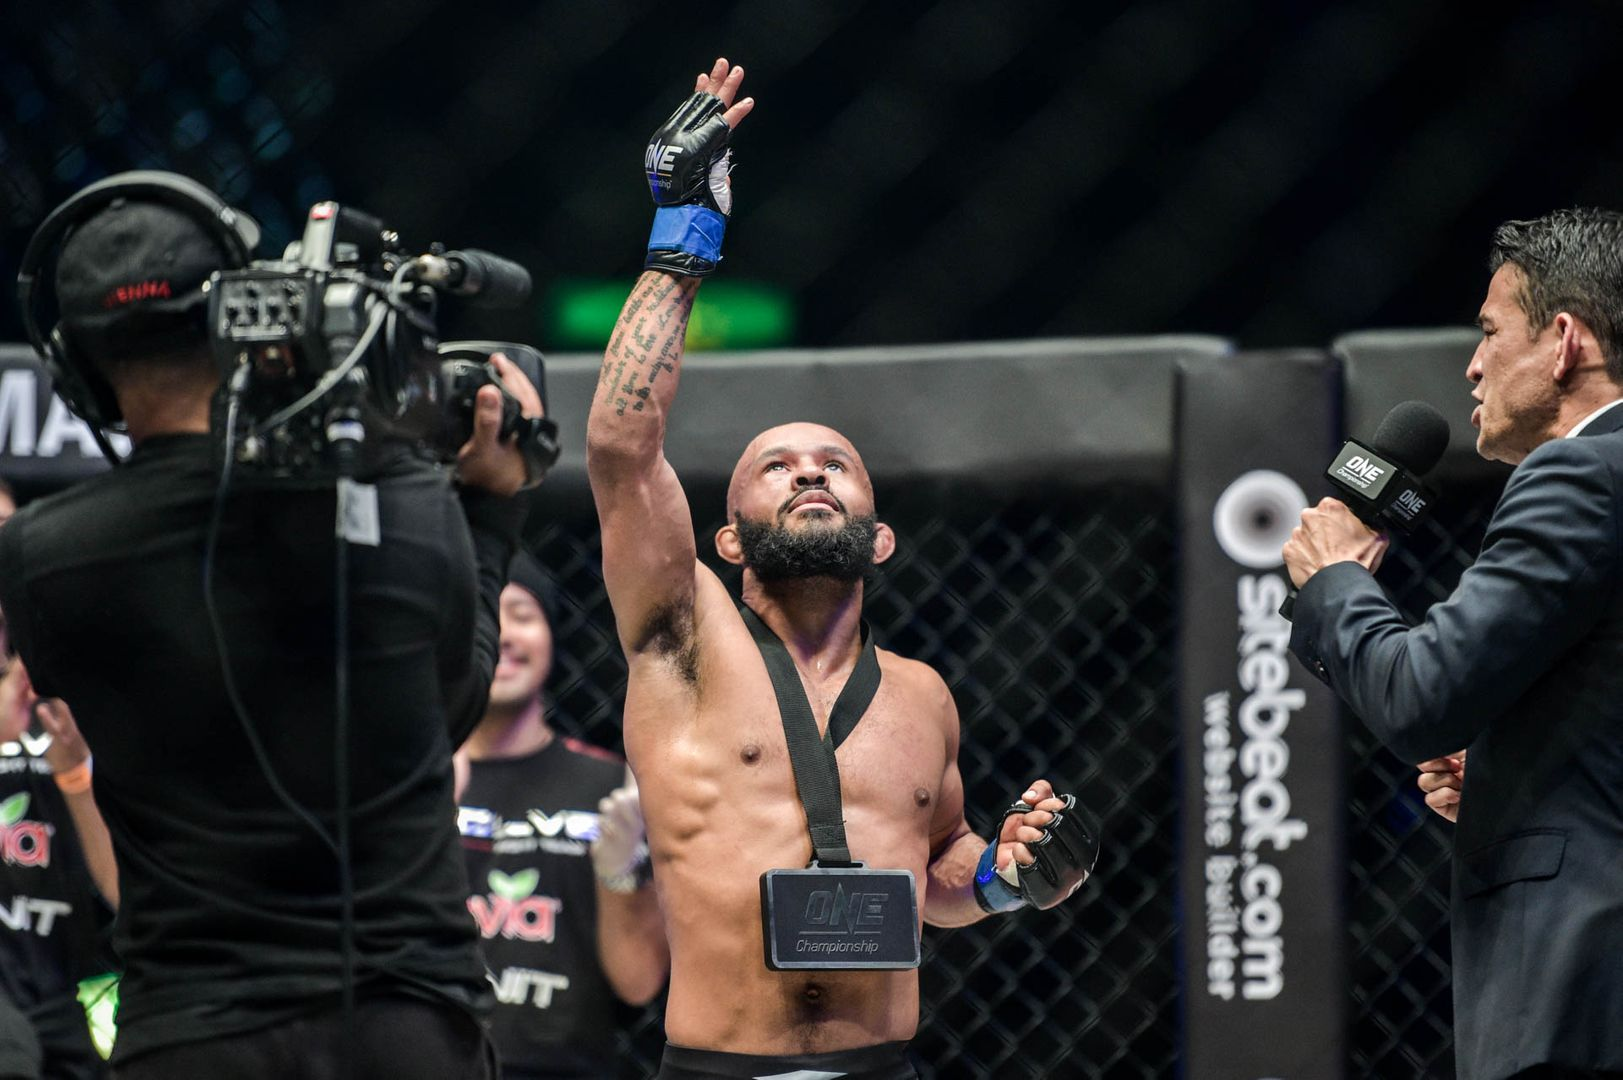 Demetrious Johnson celebrates his submission of Yuya Wakamatsu at ONE: A NEW ERA